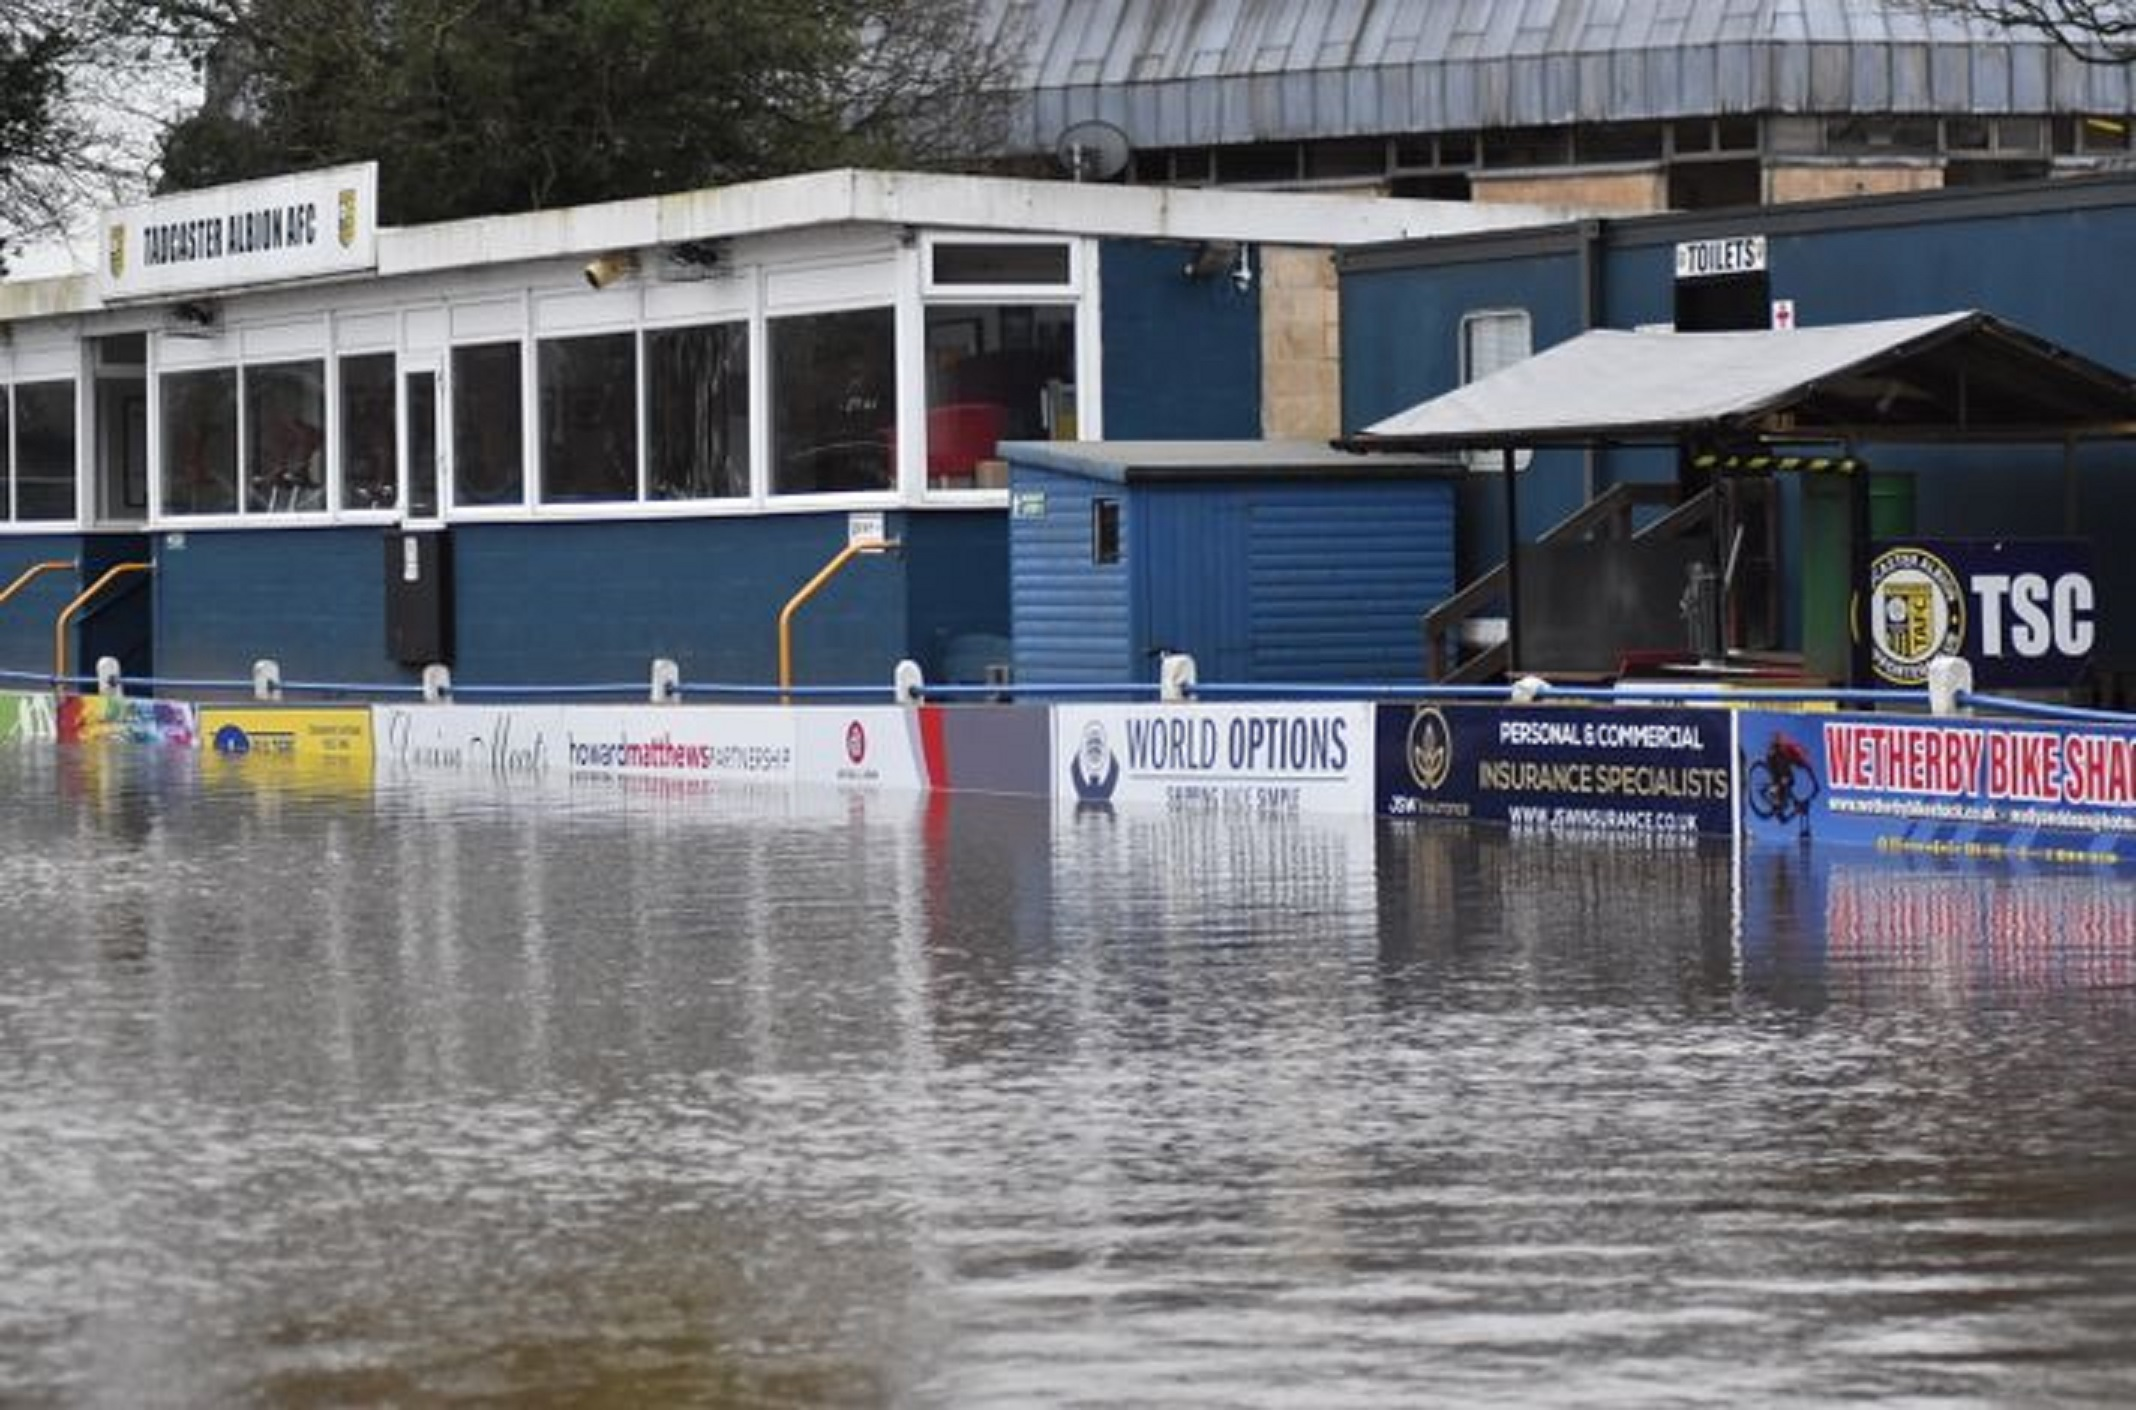 Tadcaster Albion's football pitch submerged under water after flooding